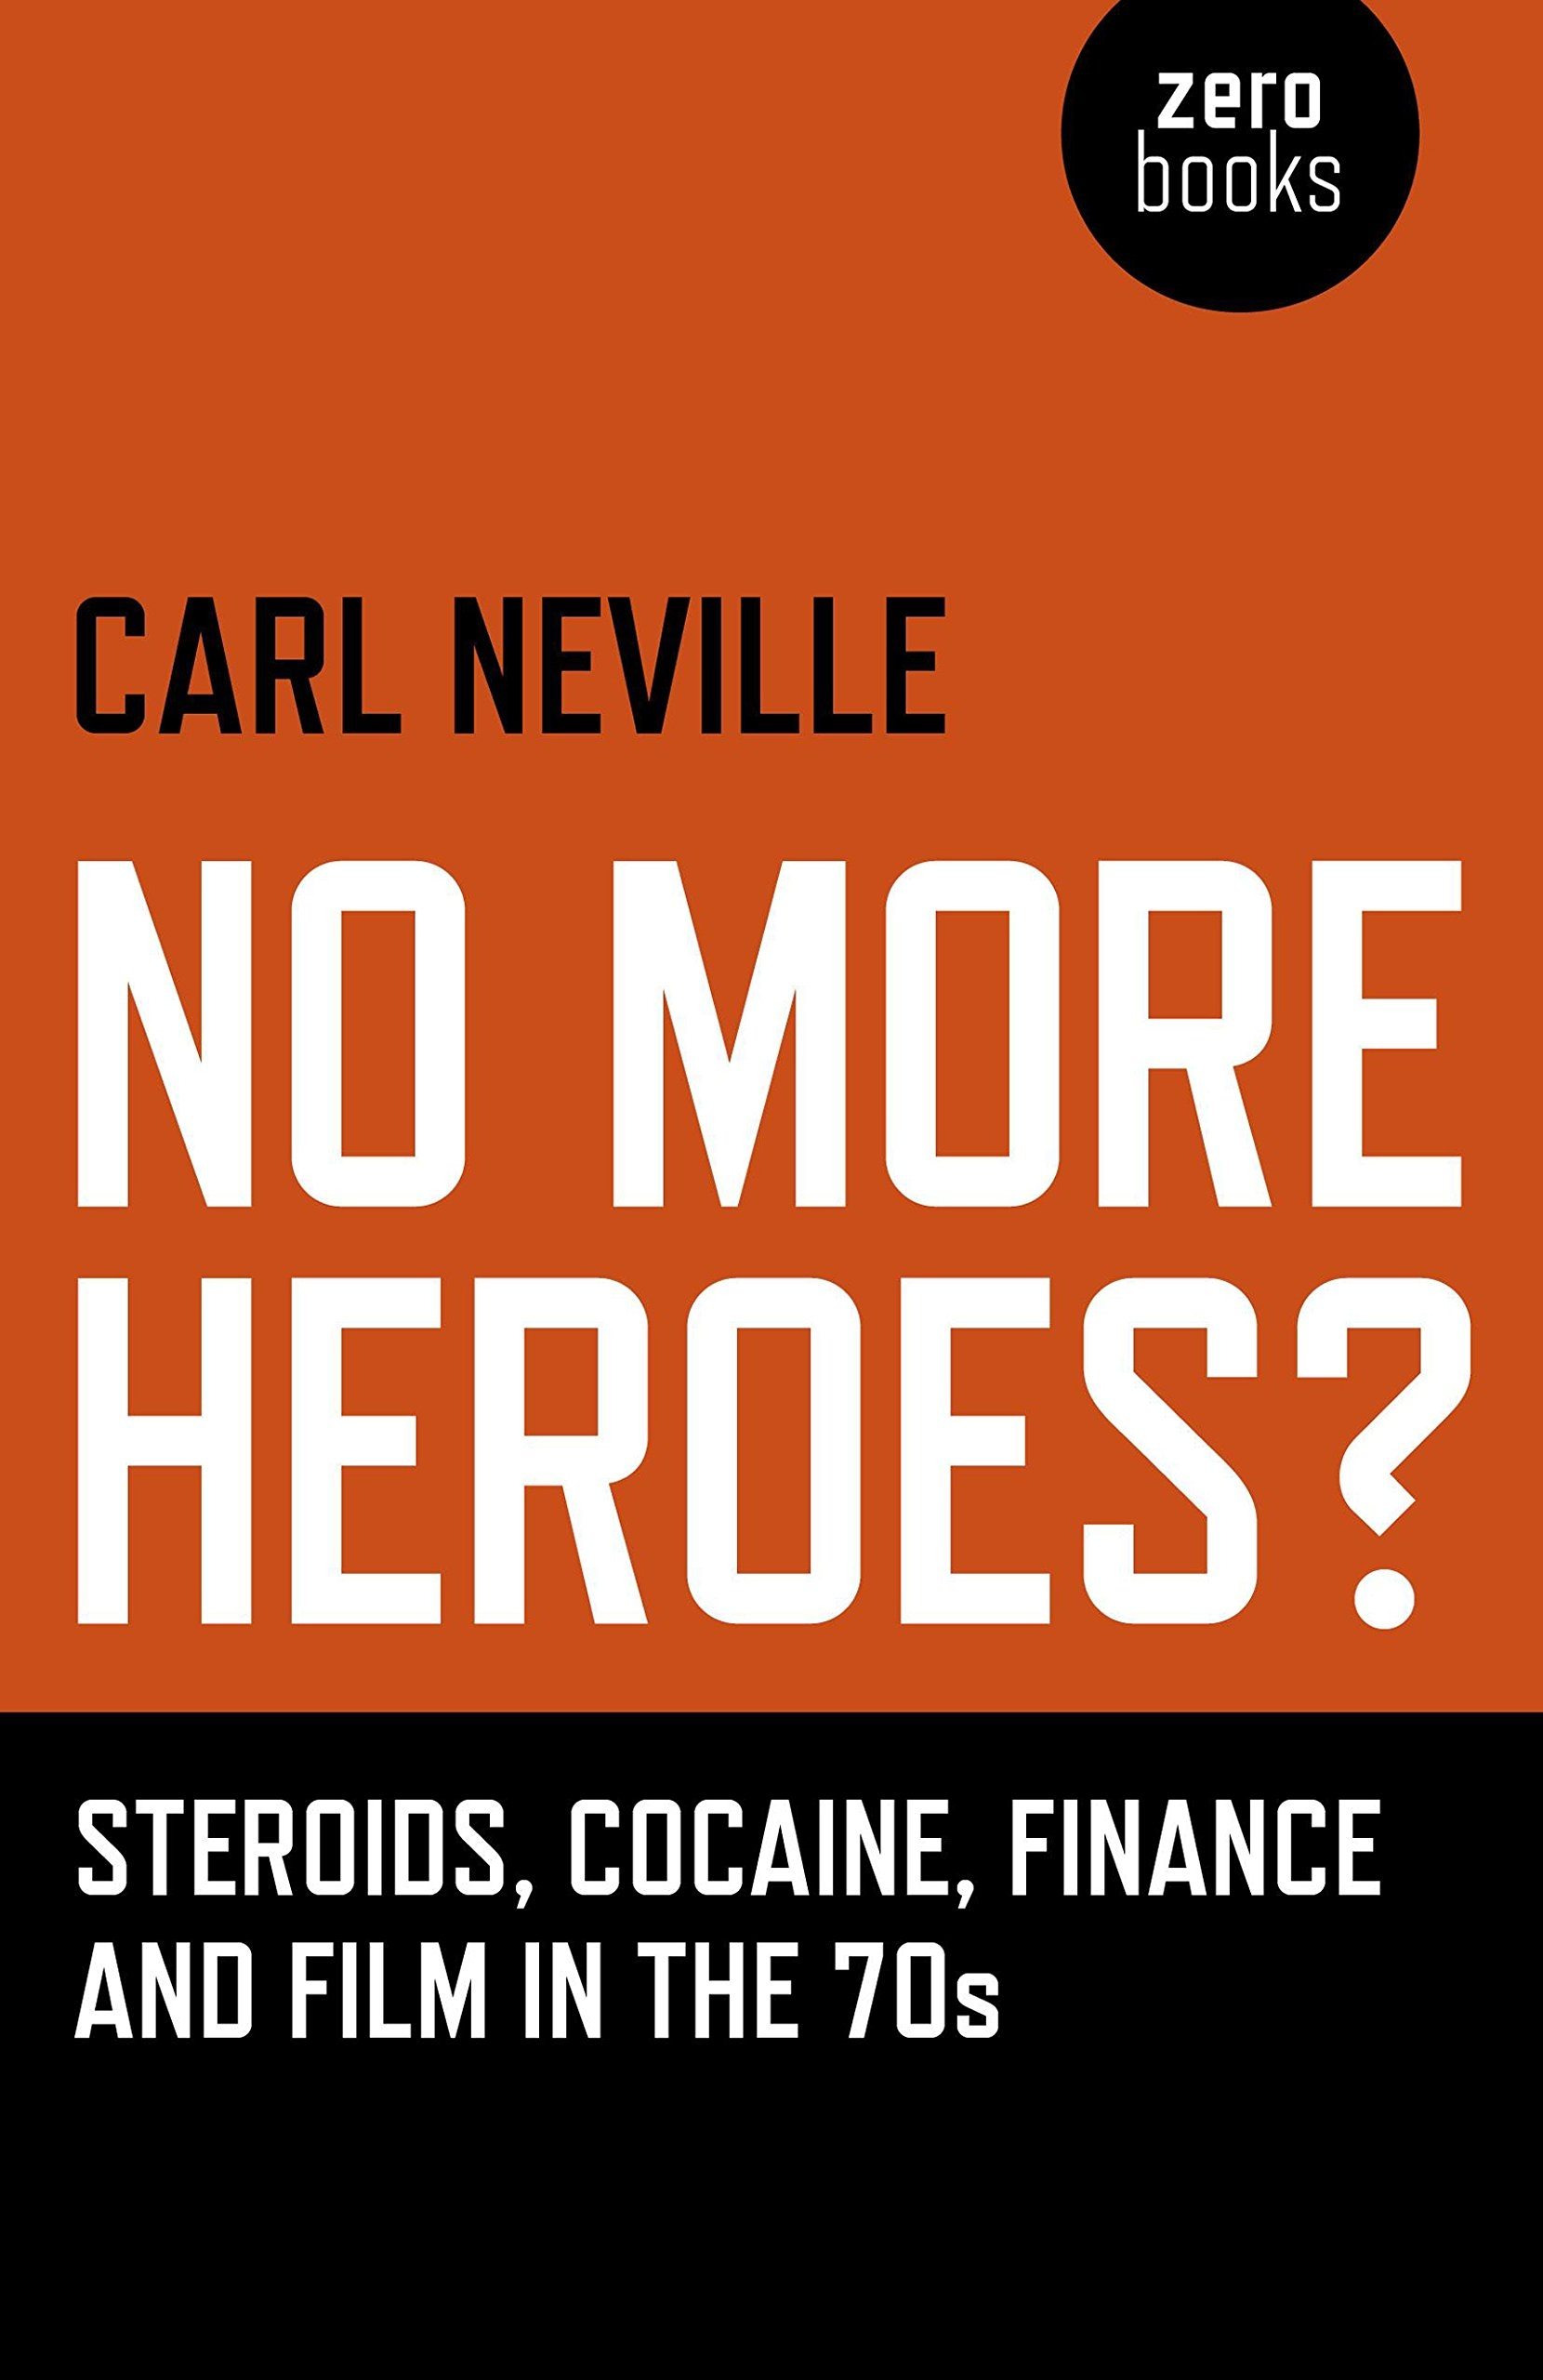 Buy No More Heroes?: Steroids, Cocaine, Finance and Film in the 70s